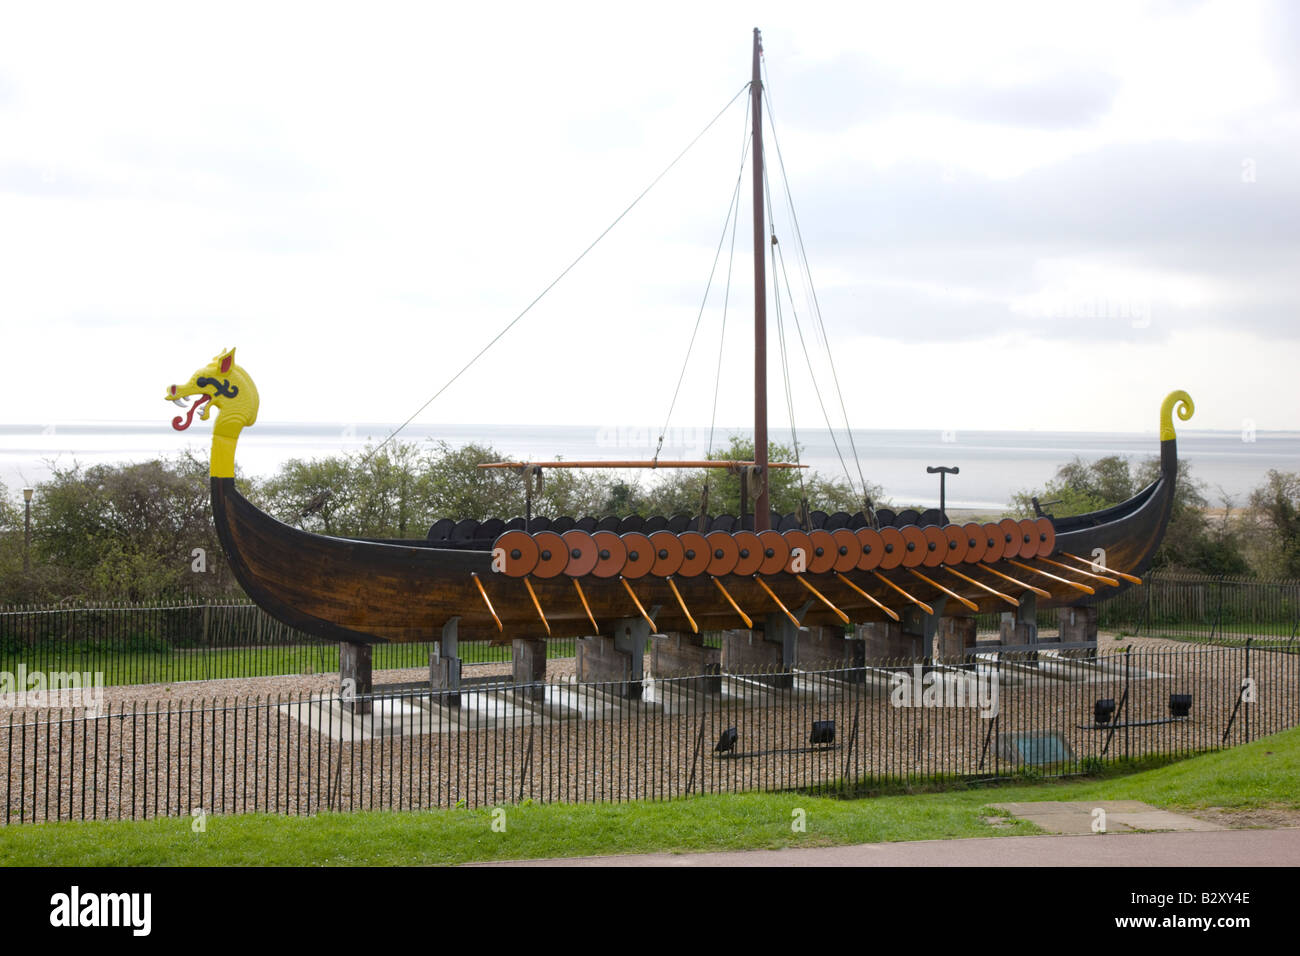 Viking ship marking the traditional landing place of the Saxons in Pegwell BayAD 449 - Stock Image